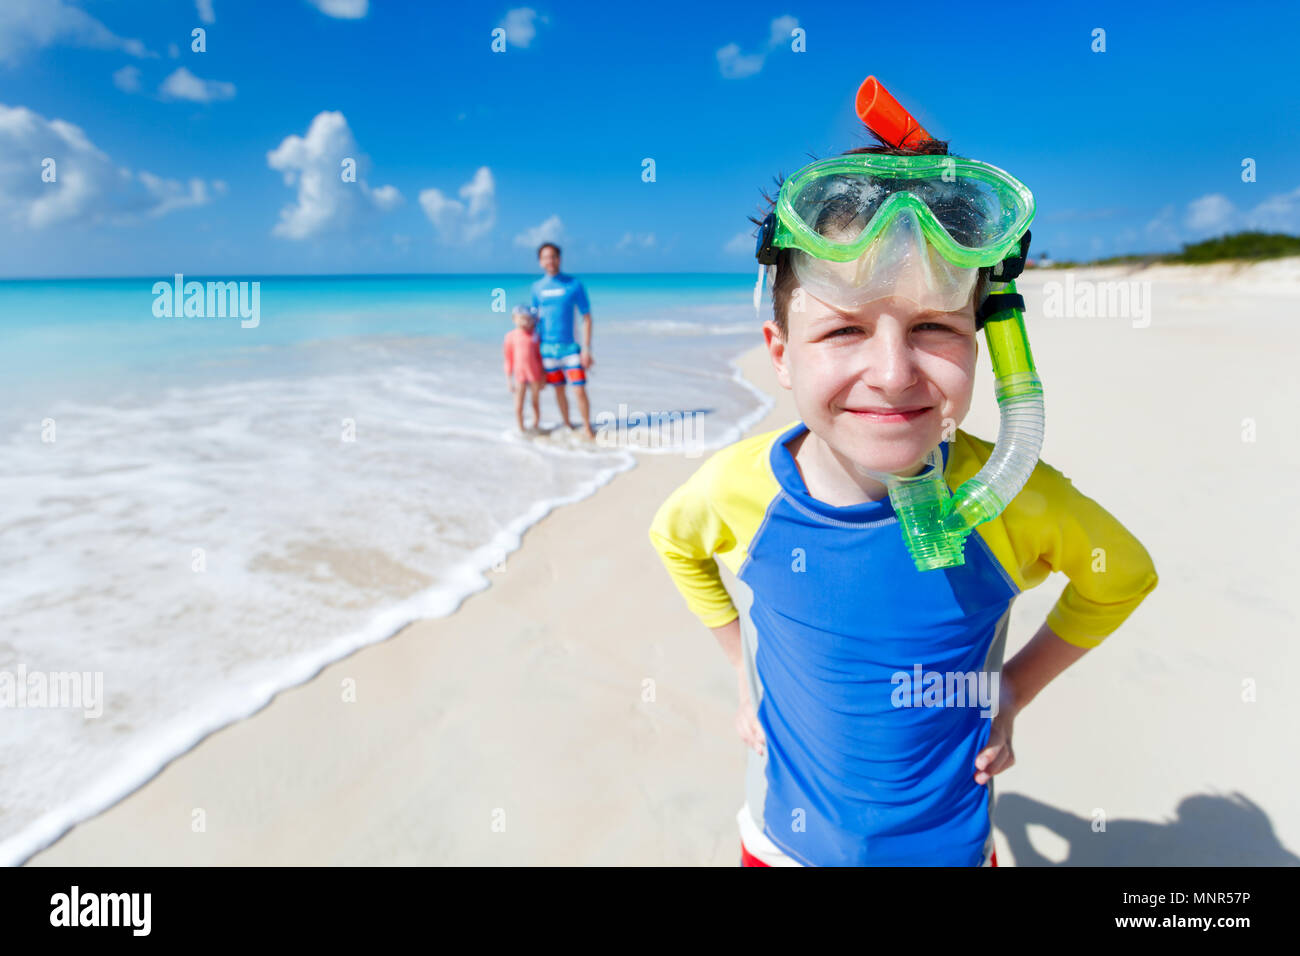 Boy and his family with snorkeling equipment enjoying beach vacation - Stock Image